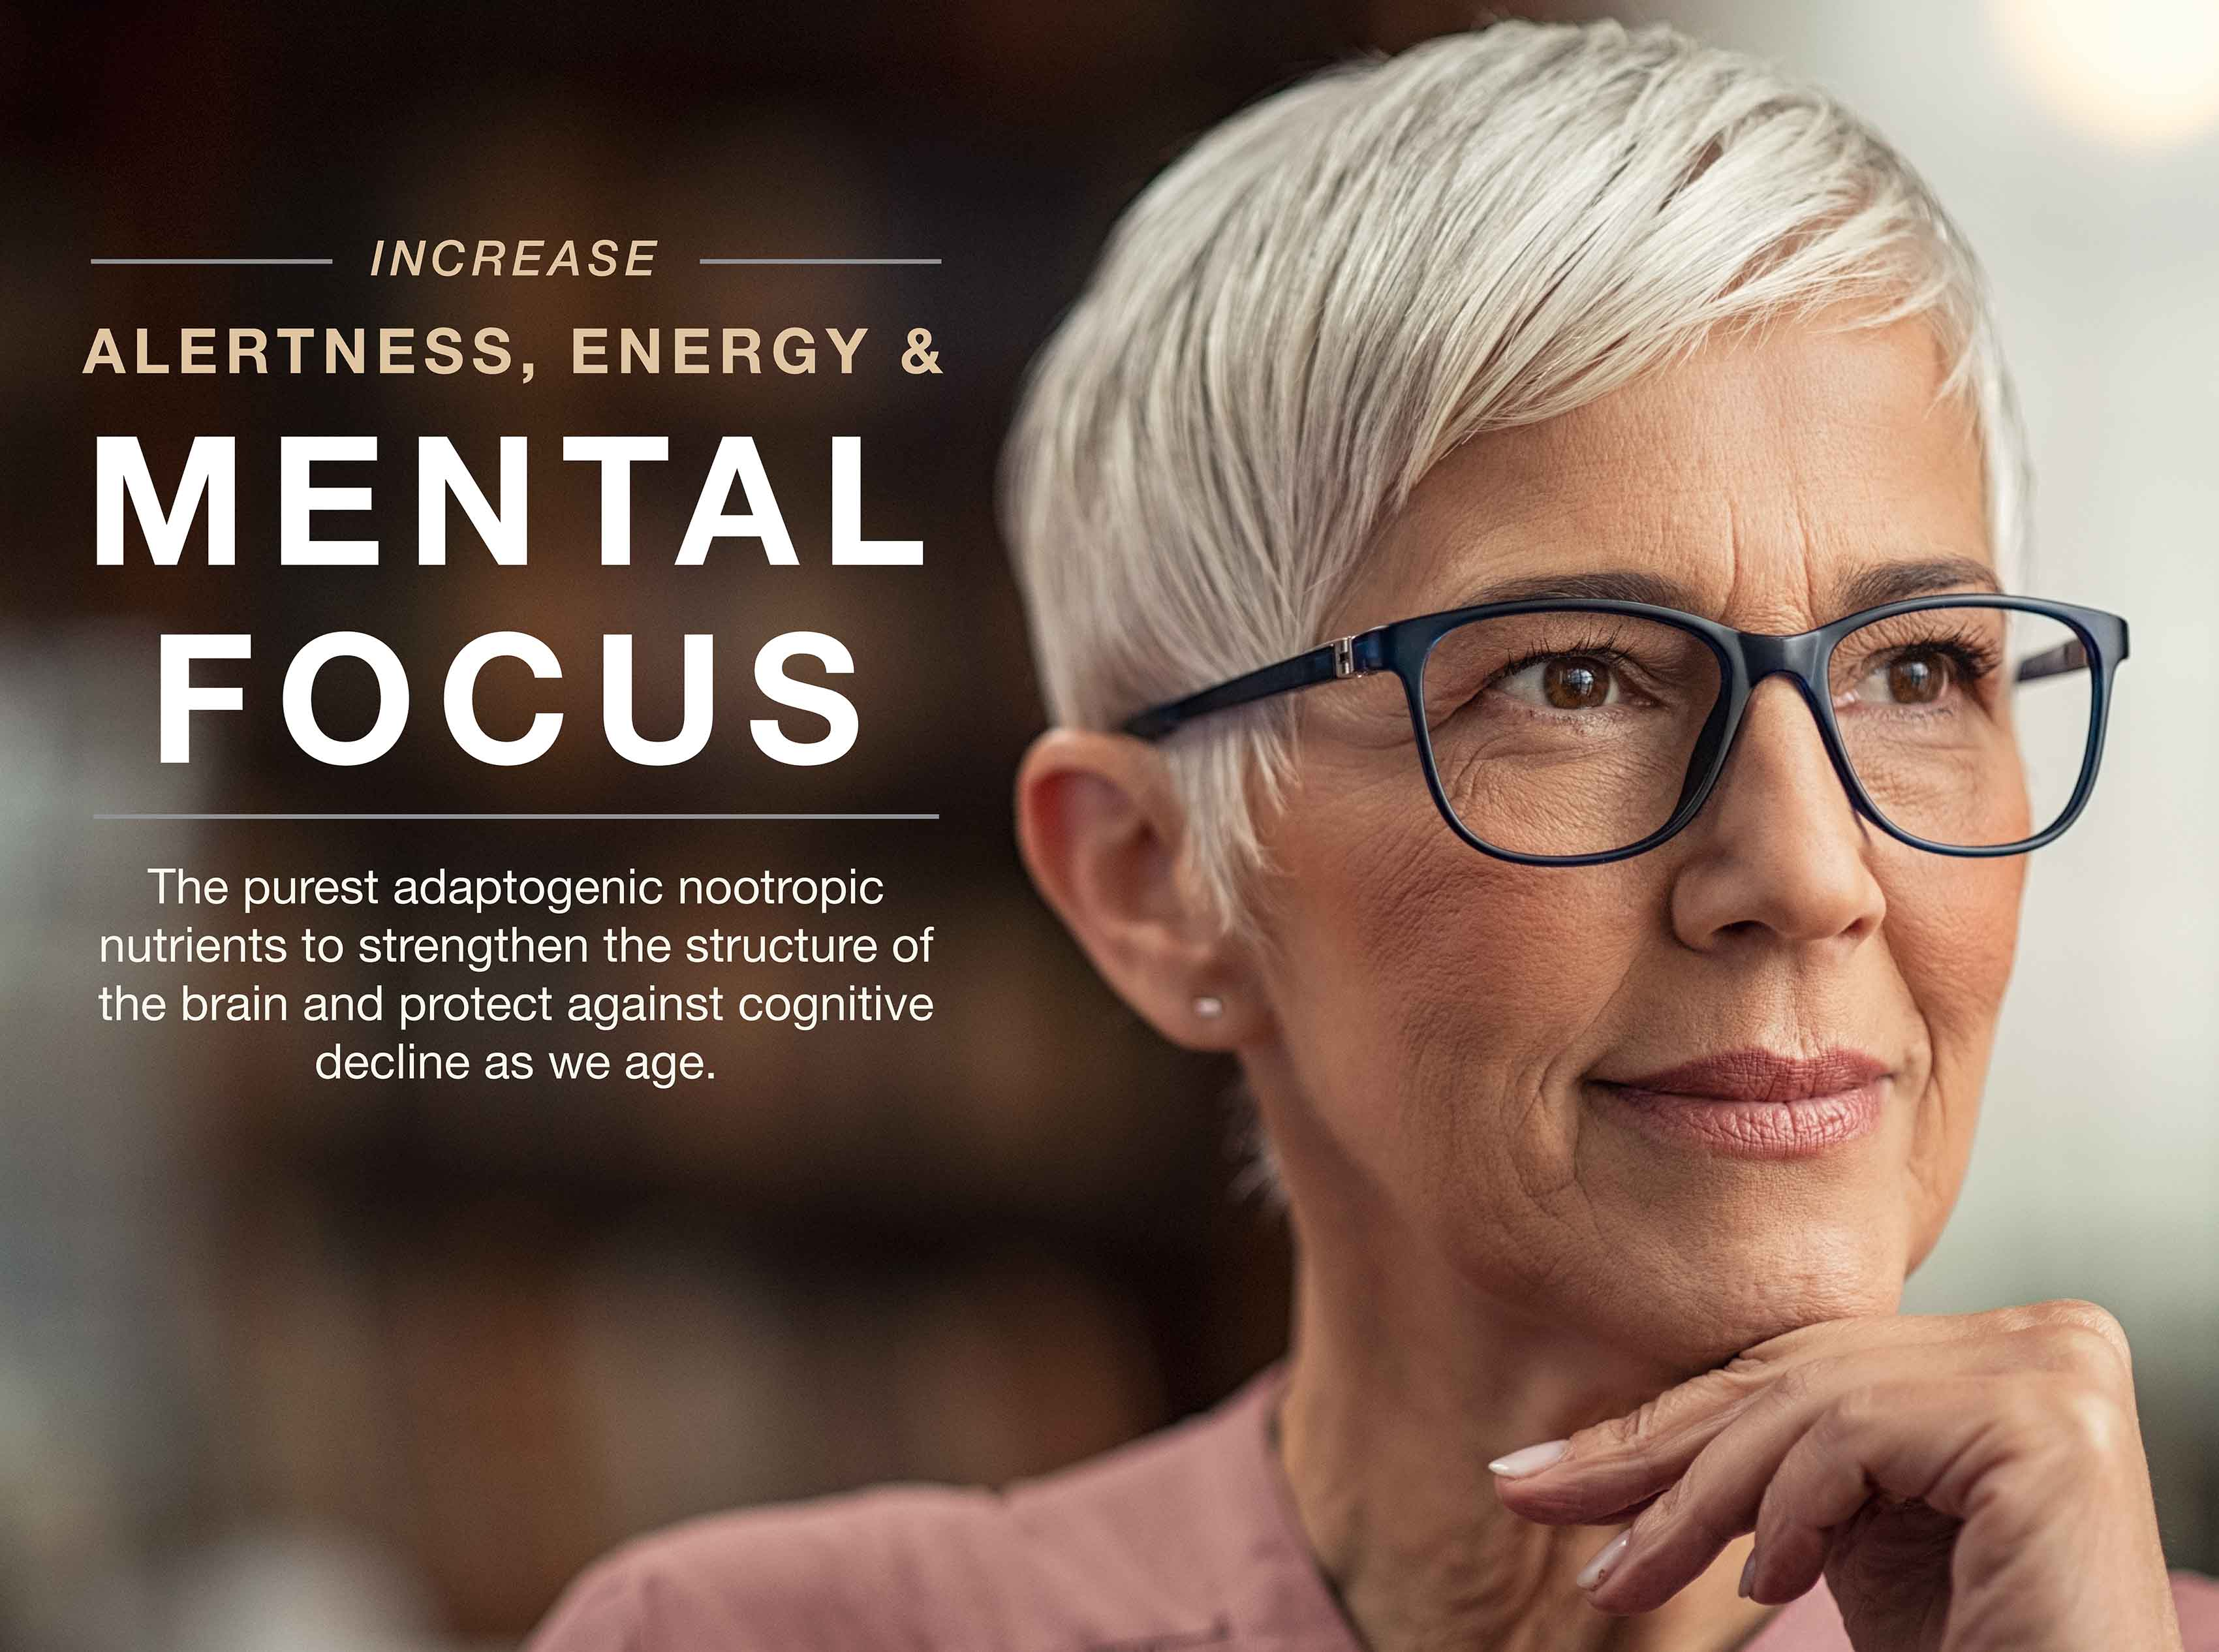 Increase alertness, energy, and mental focus with the purest adaptogenic nootropic nutrients to strengthen brain structure.